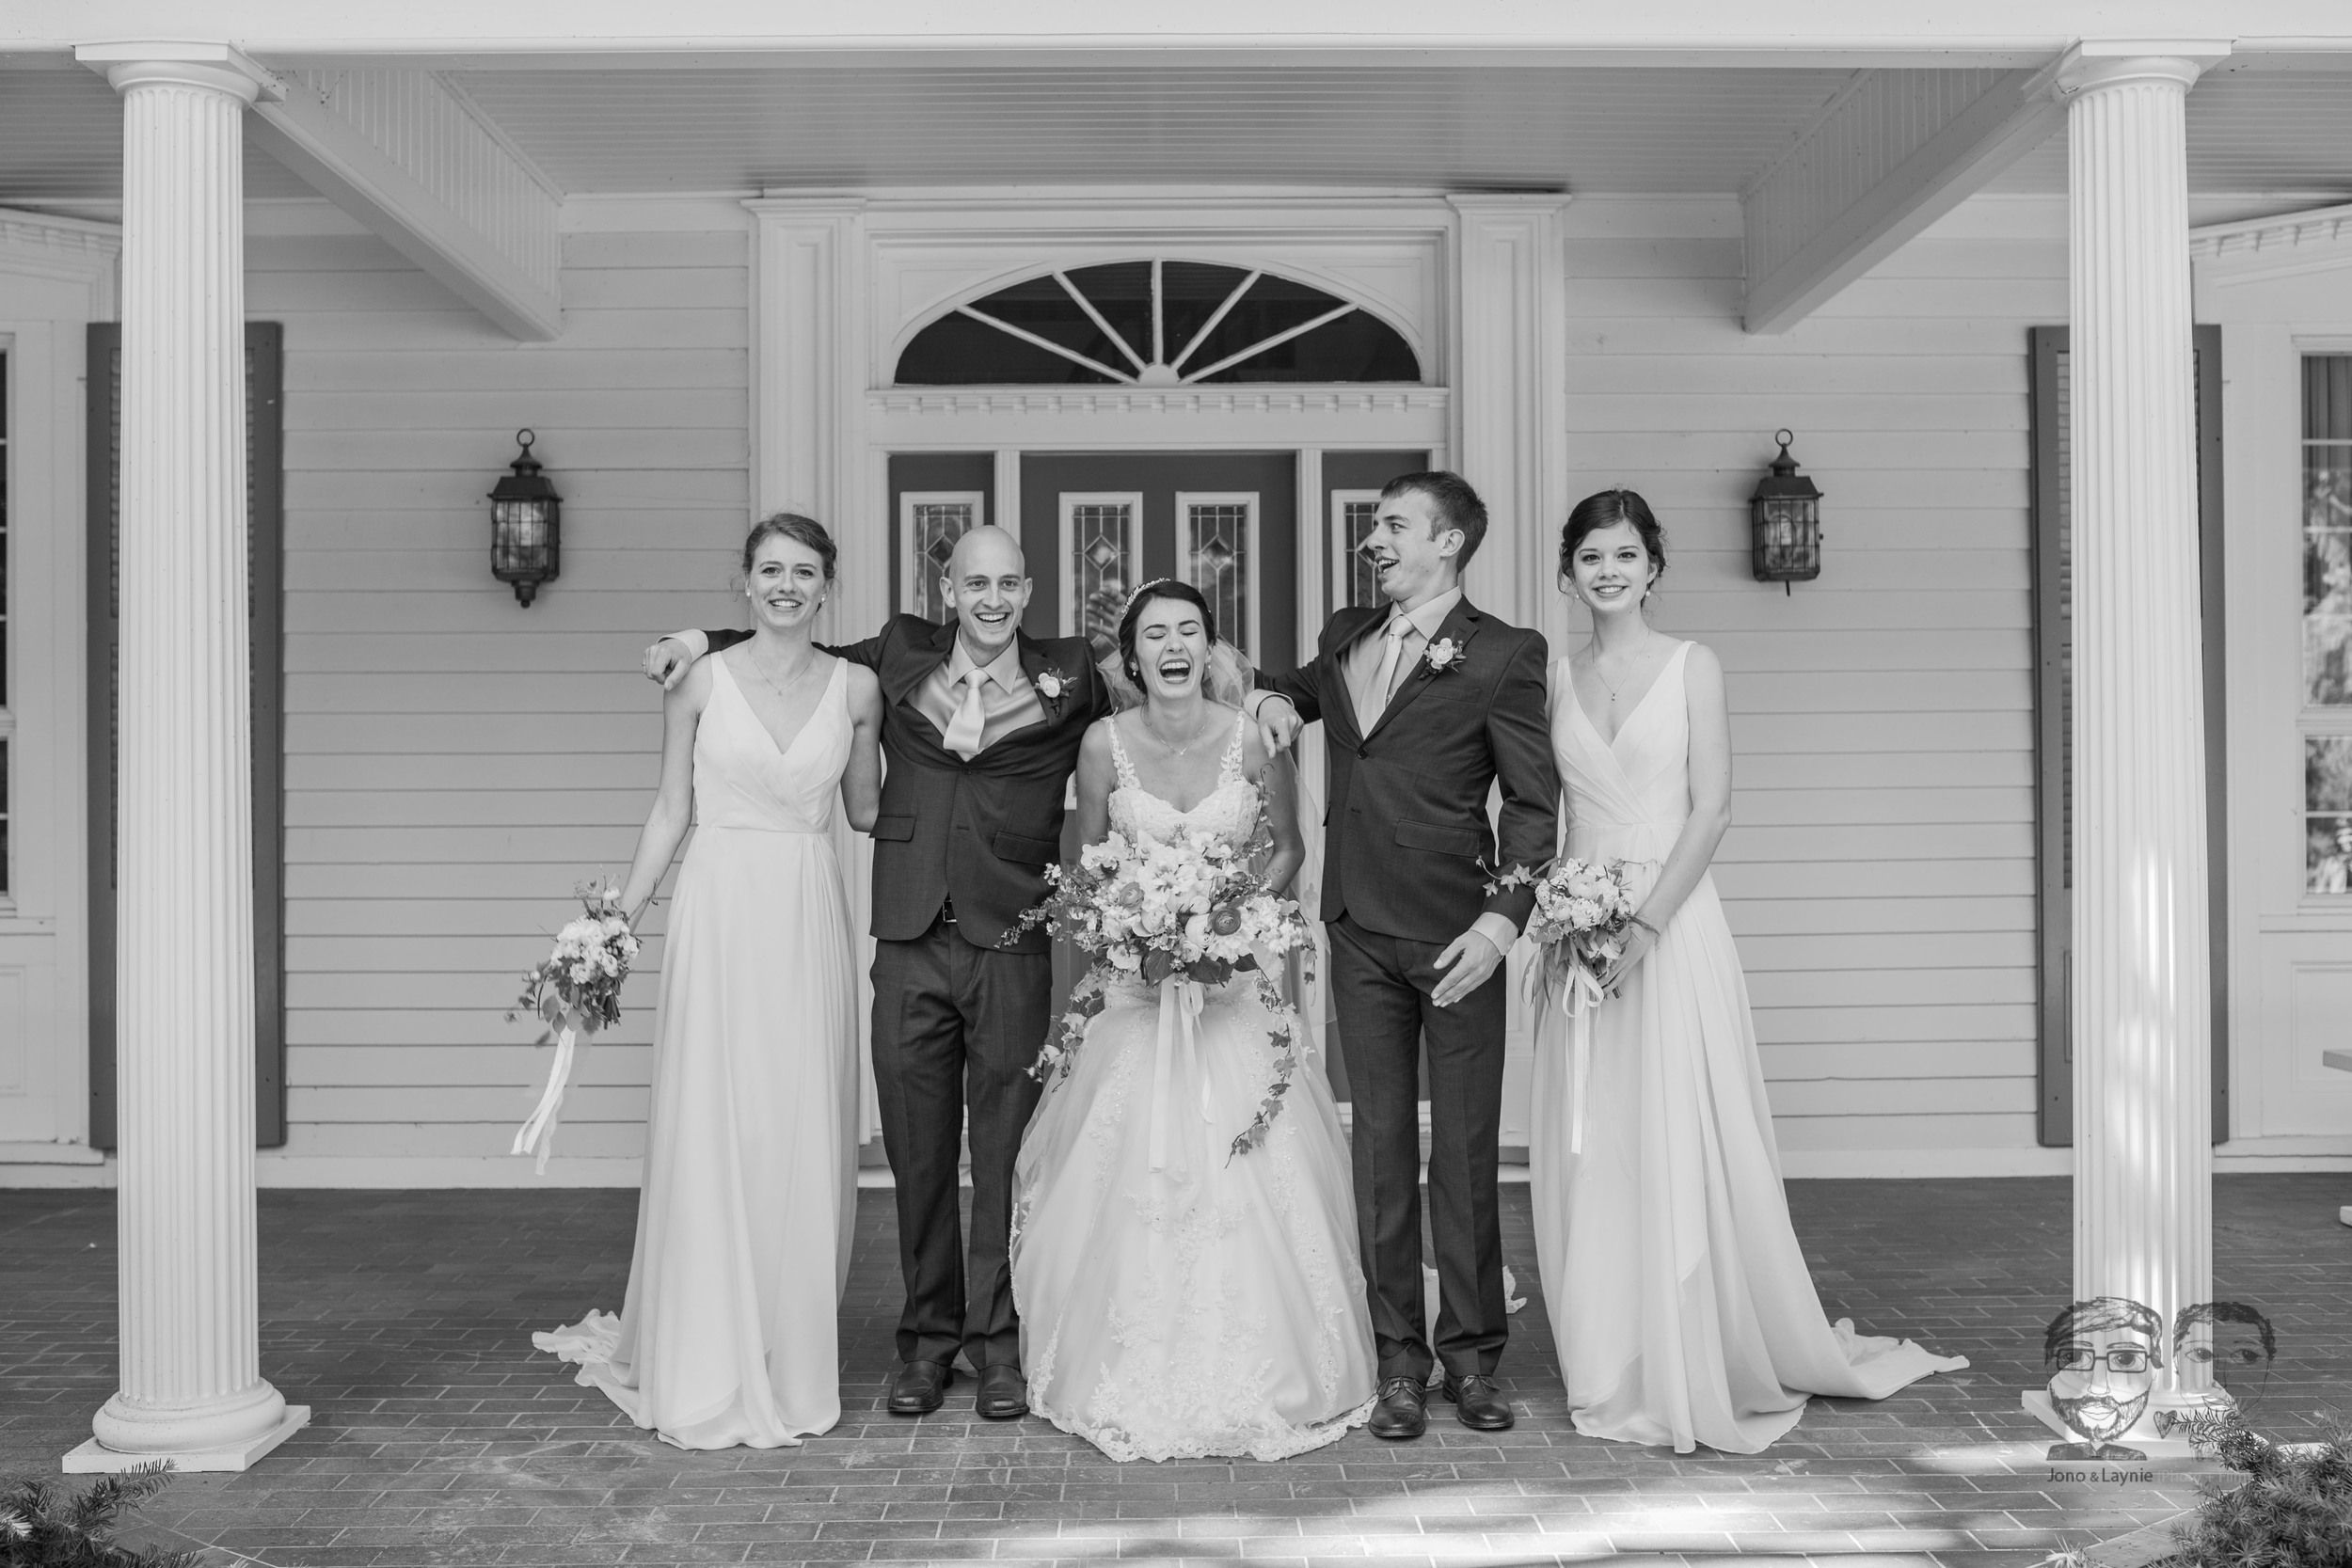 048Toronto Wedding Photographers and Videographers-Jono & Laynie Co.jpg